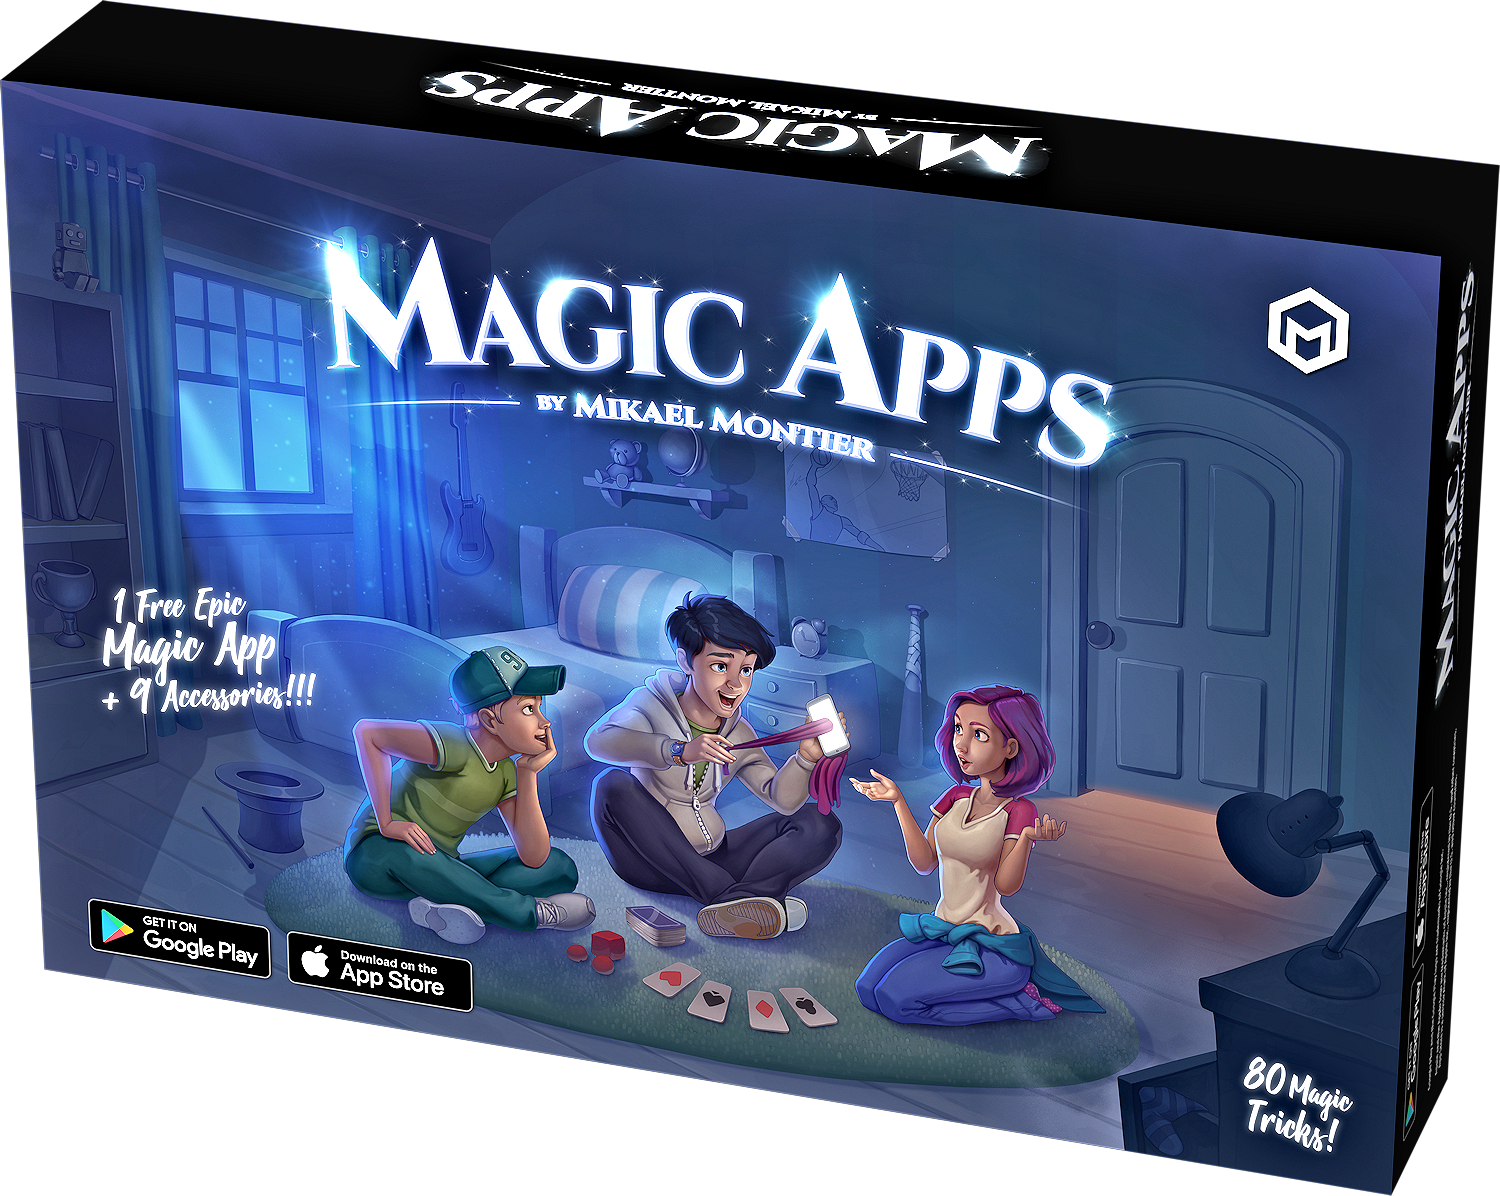 Magic Apps by Mikael Montier